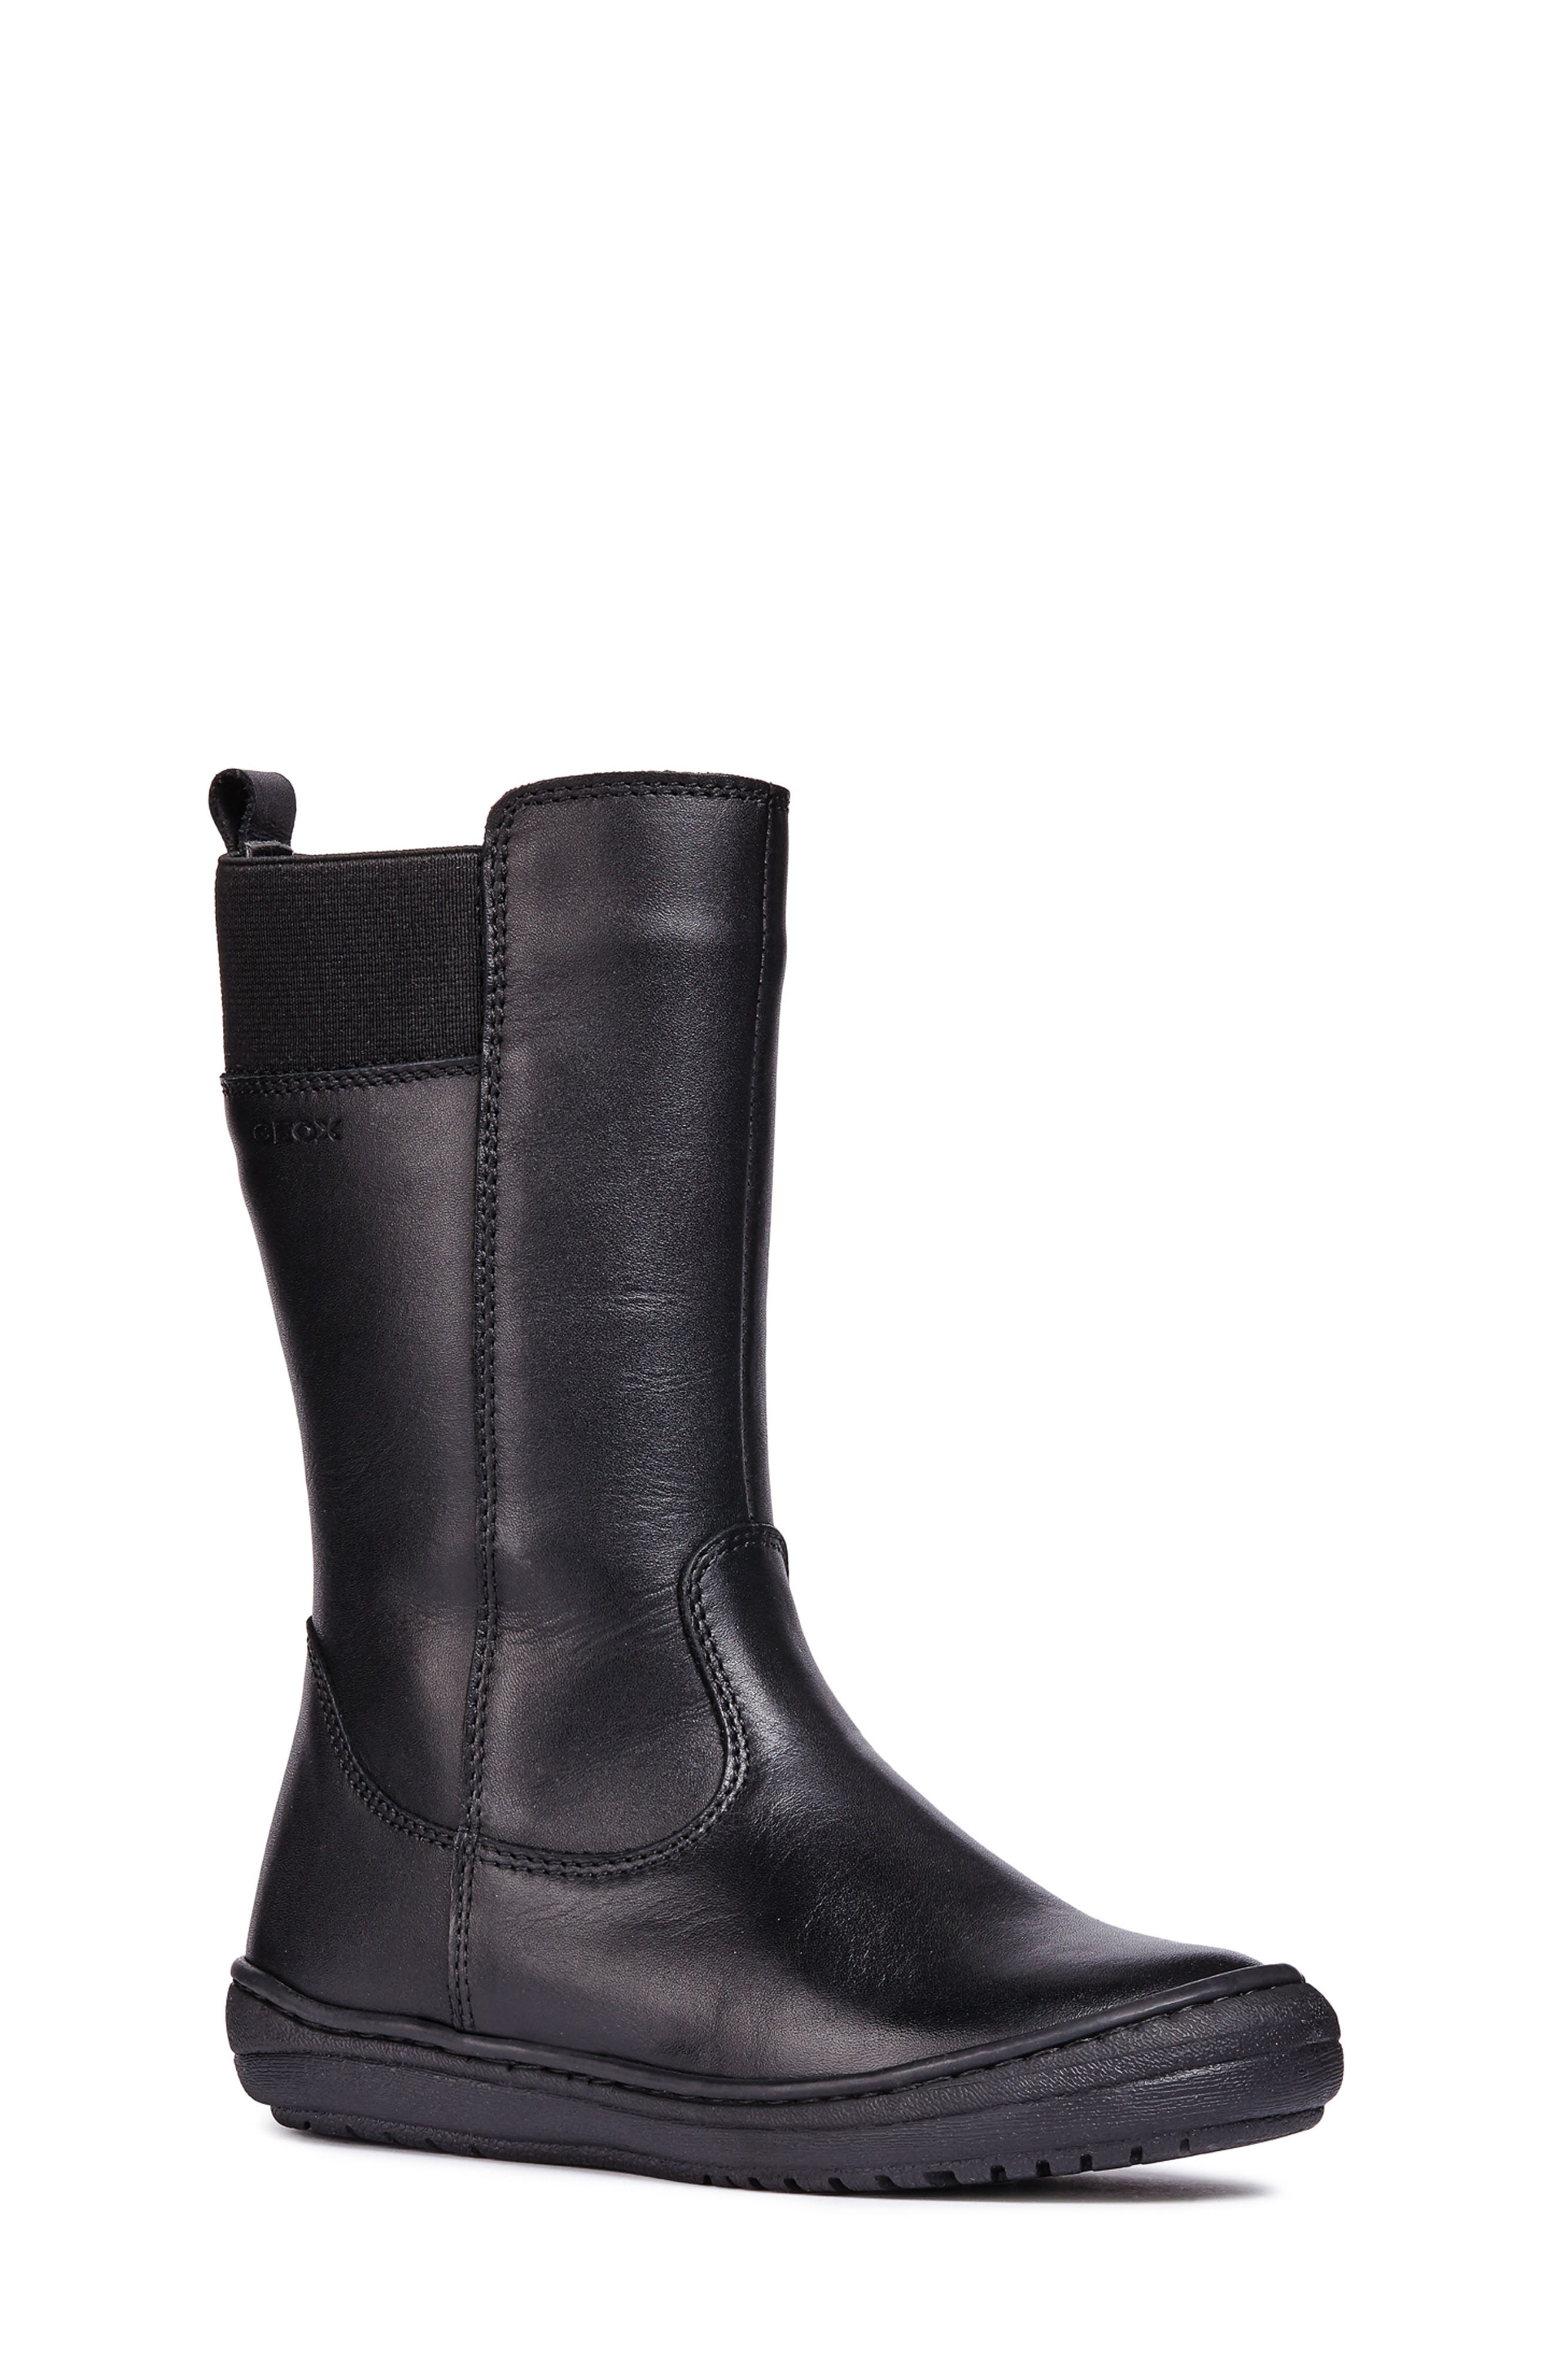 Hadriel Boot,                         Main,                         color, BLACK